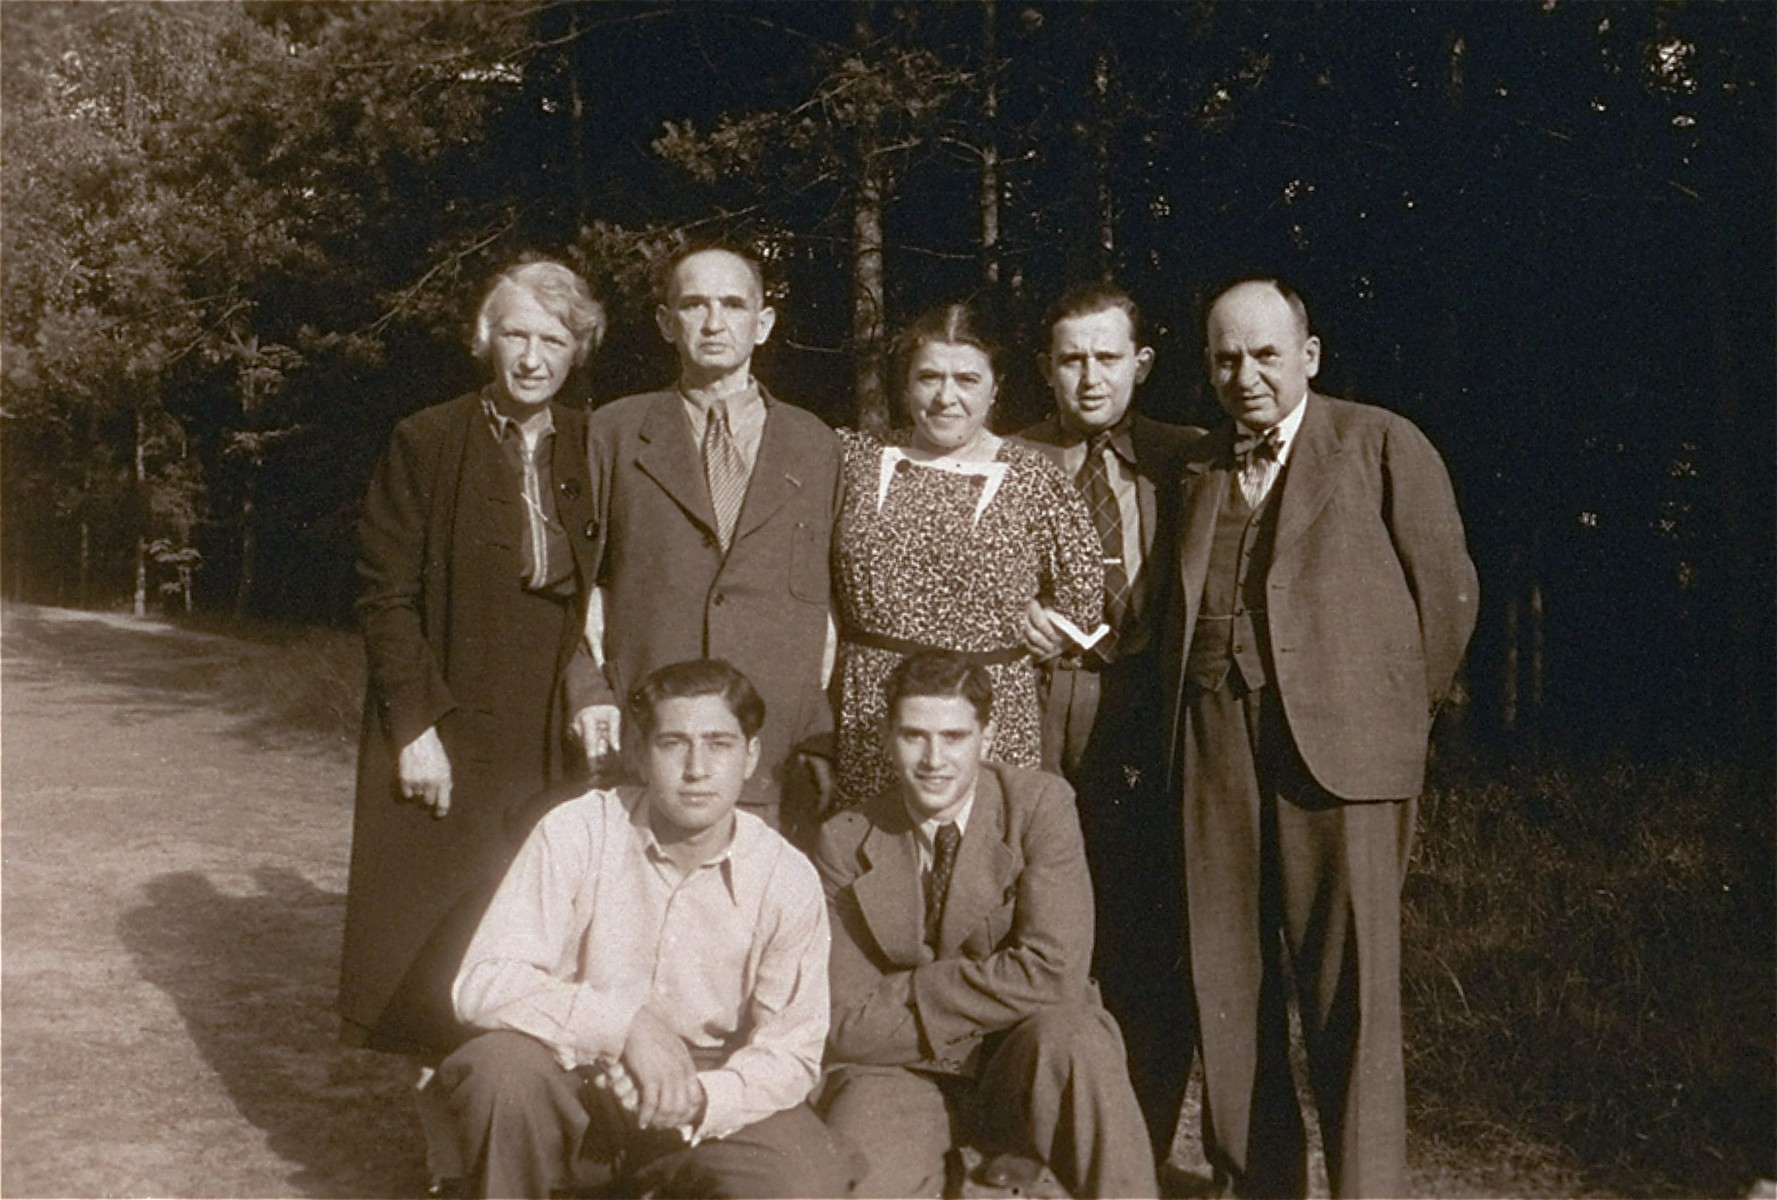 Group portrait of an extended German-Jewish family on an outing in Tiergarten in Berlin.    Among those pictured are Elsa, Carl and Peter Victor.